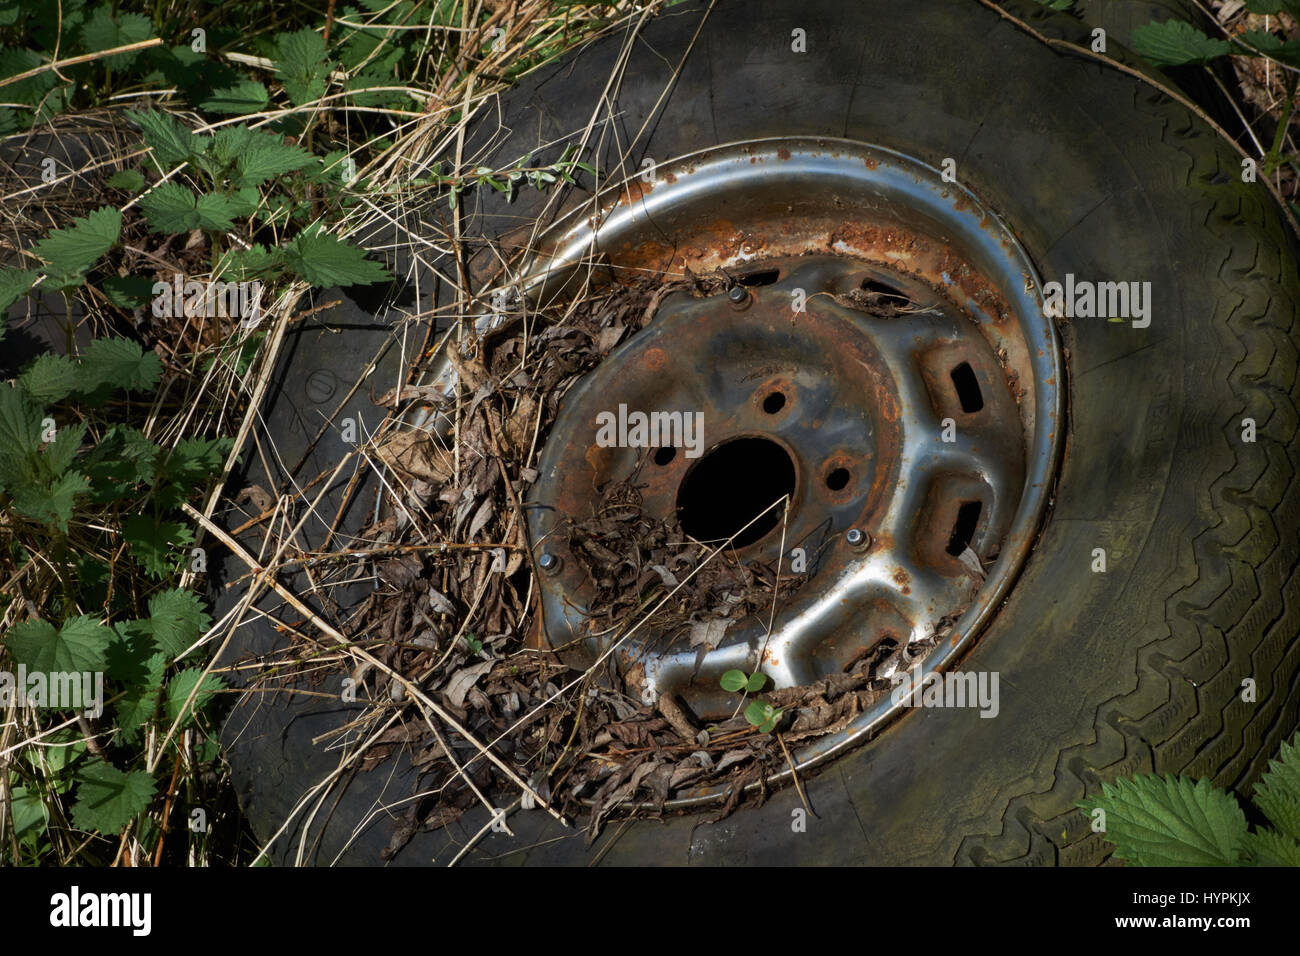 Old tyre dumped in hedgerow. UK - Stock Image